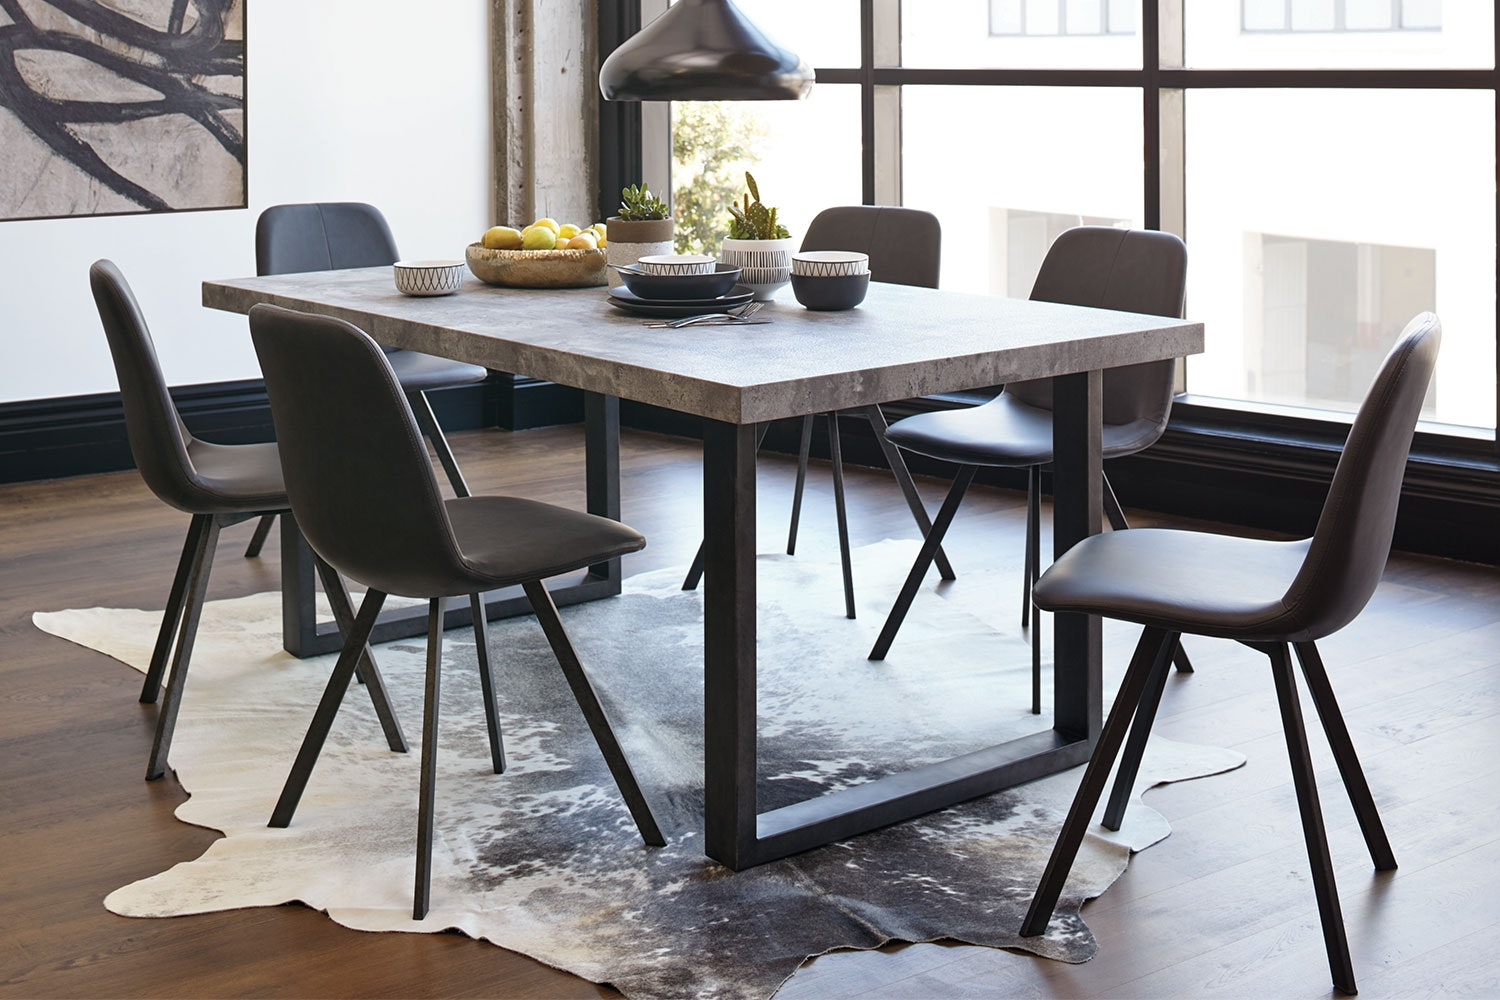 Yolanda 7 Piece Dining Suite by Stoke Furniture